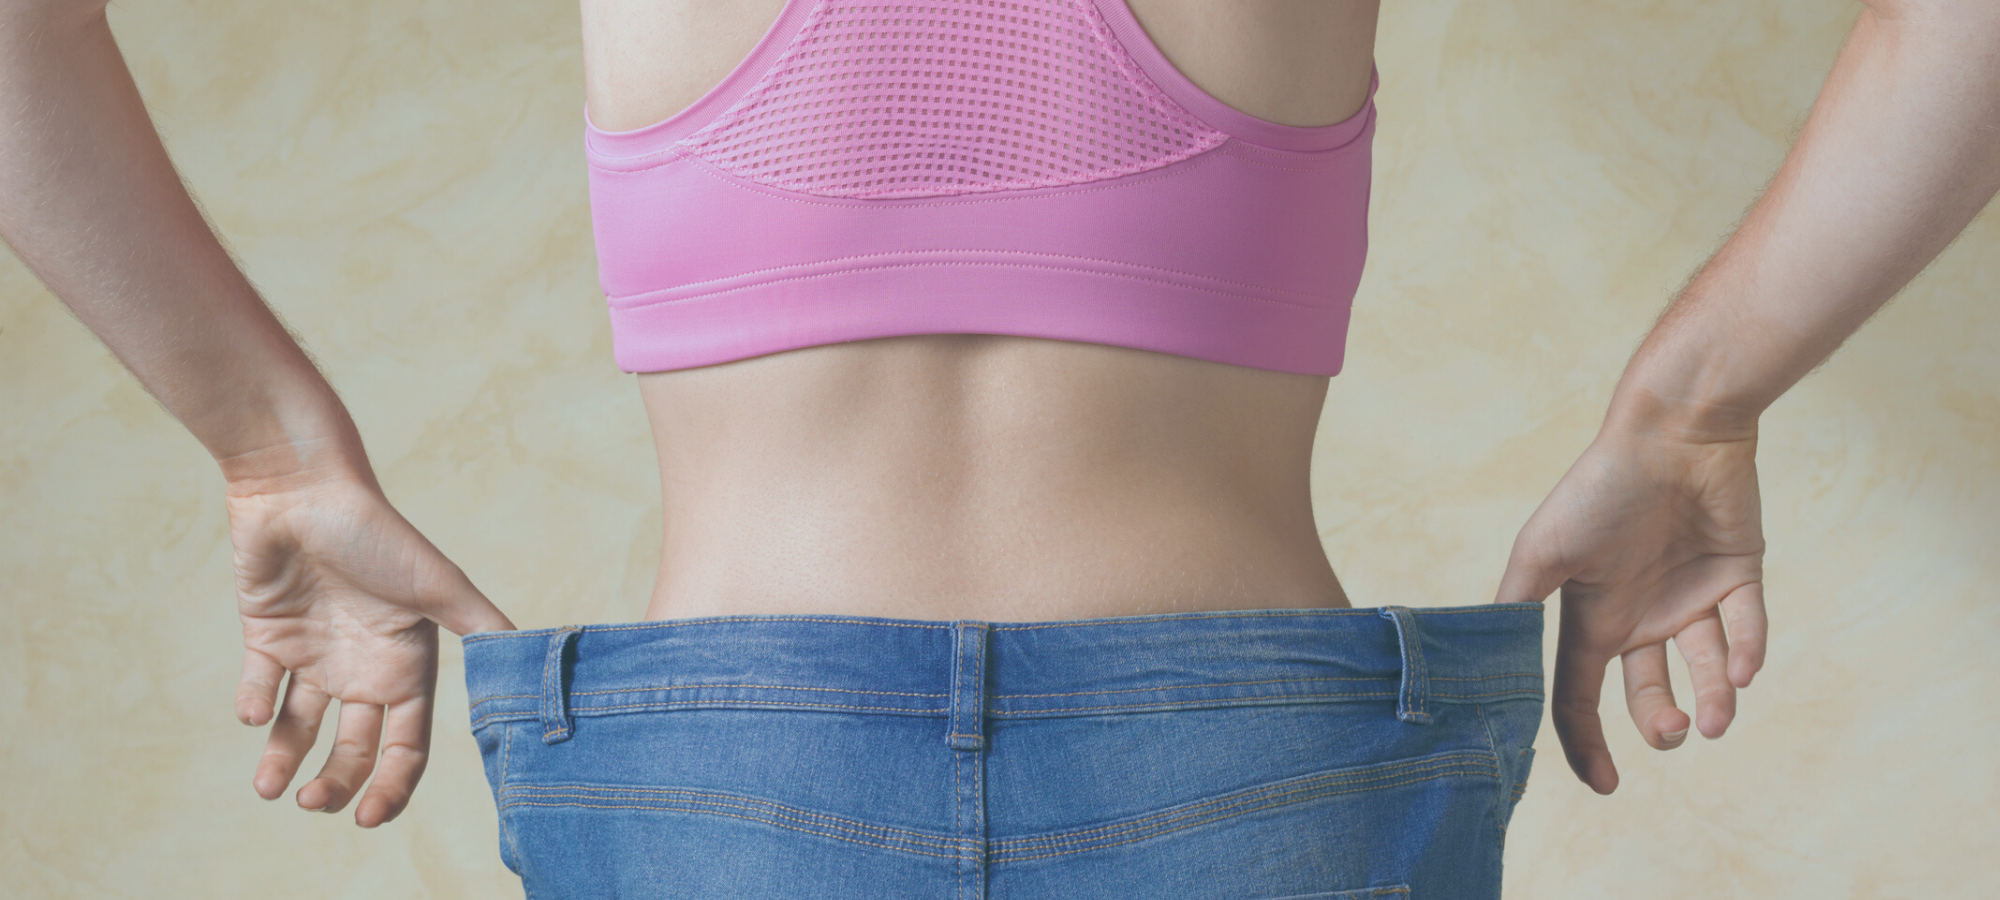 Fat freezing vs. Weight loss: What's the difference?